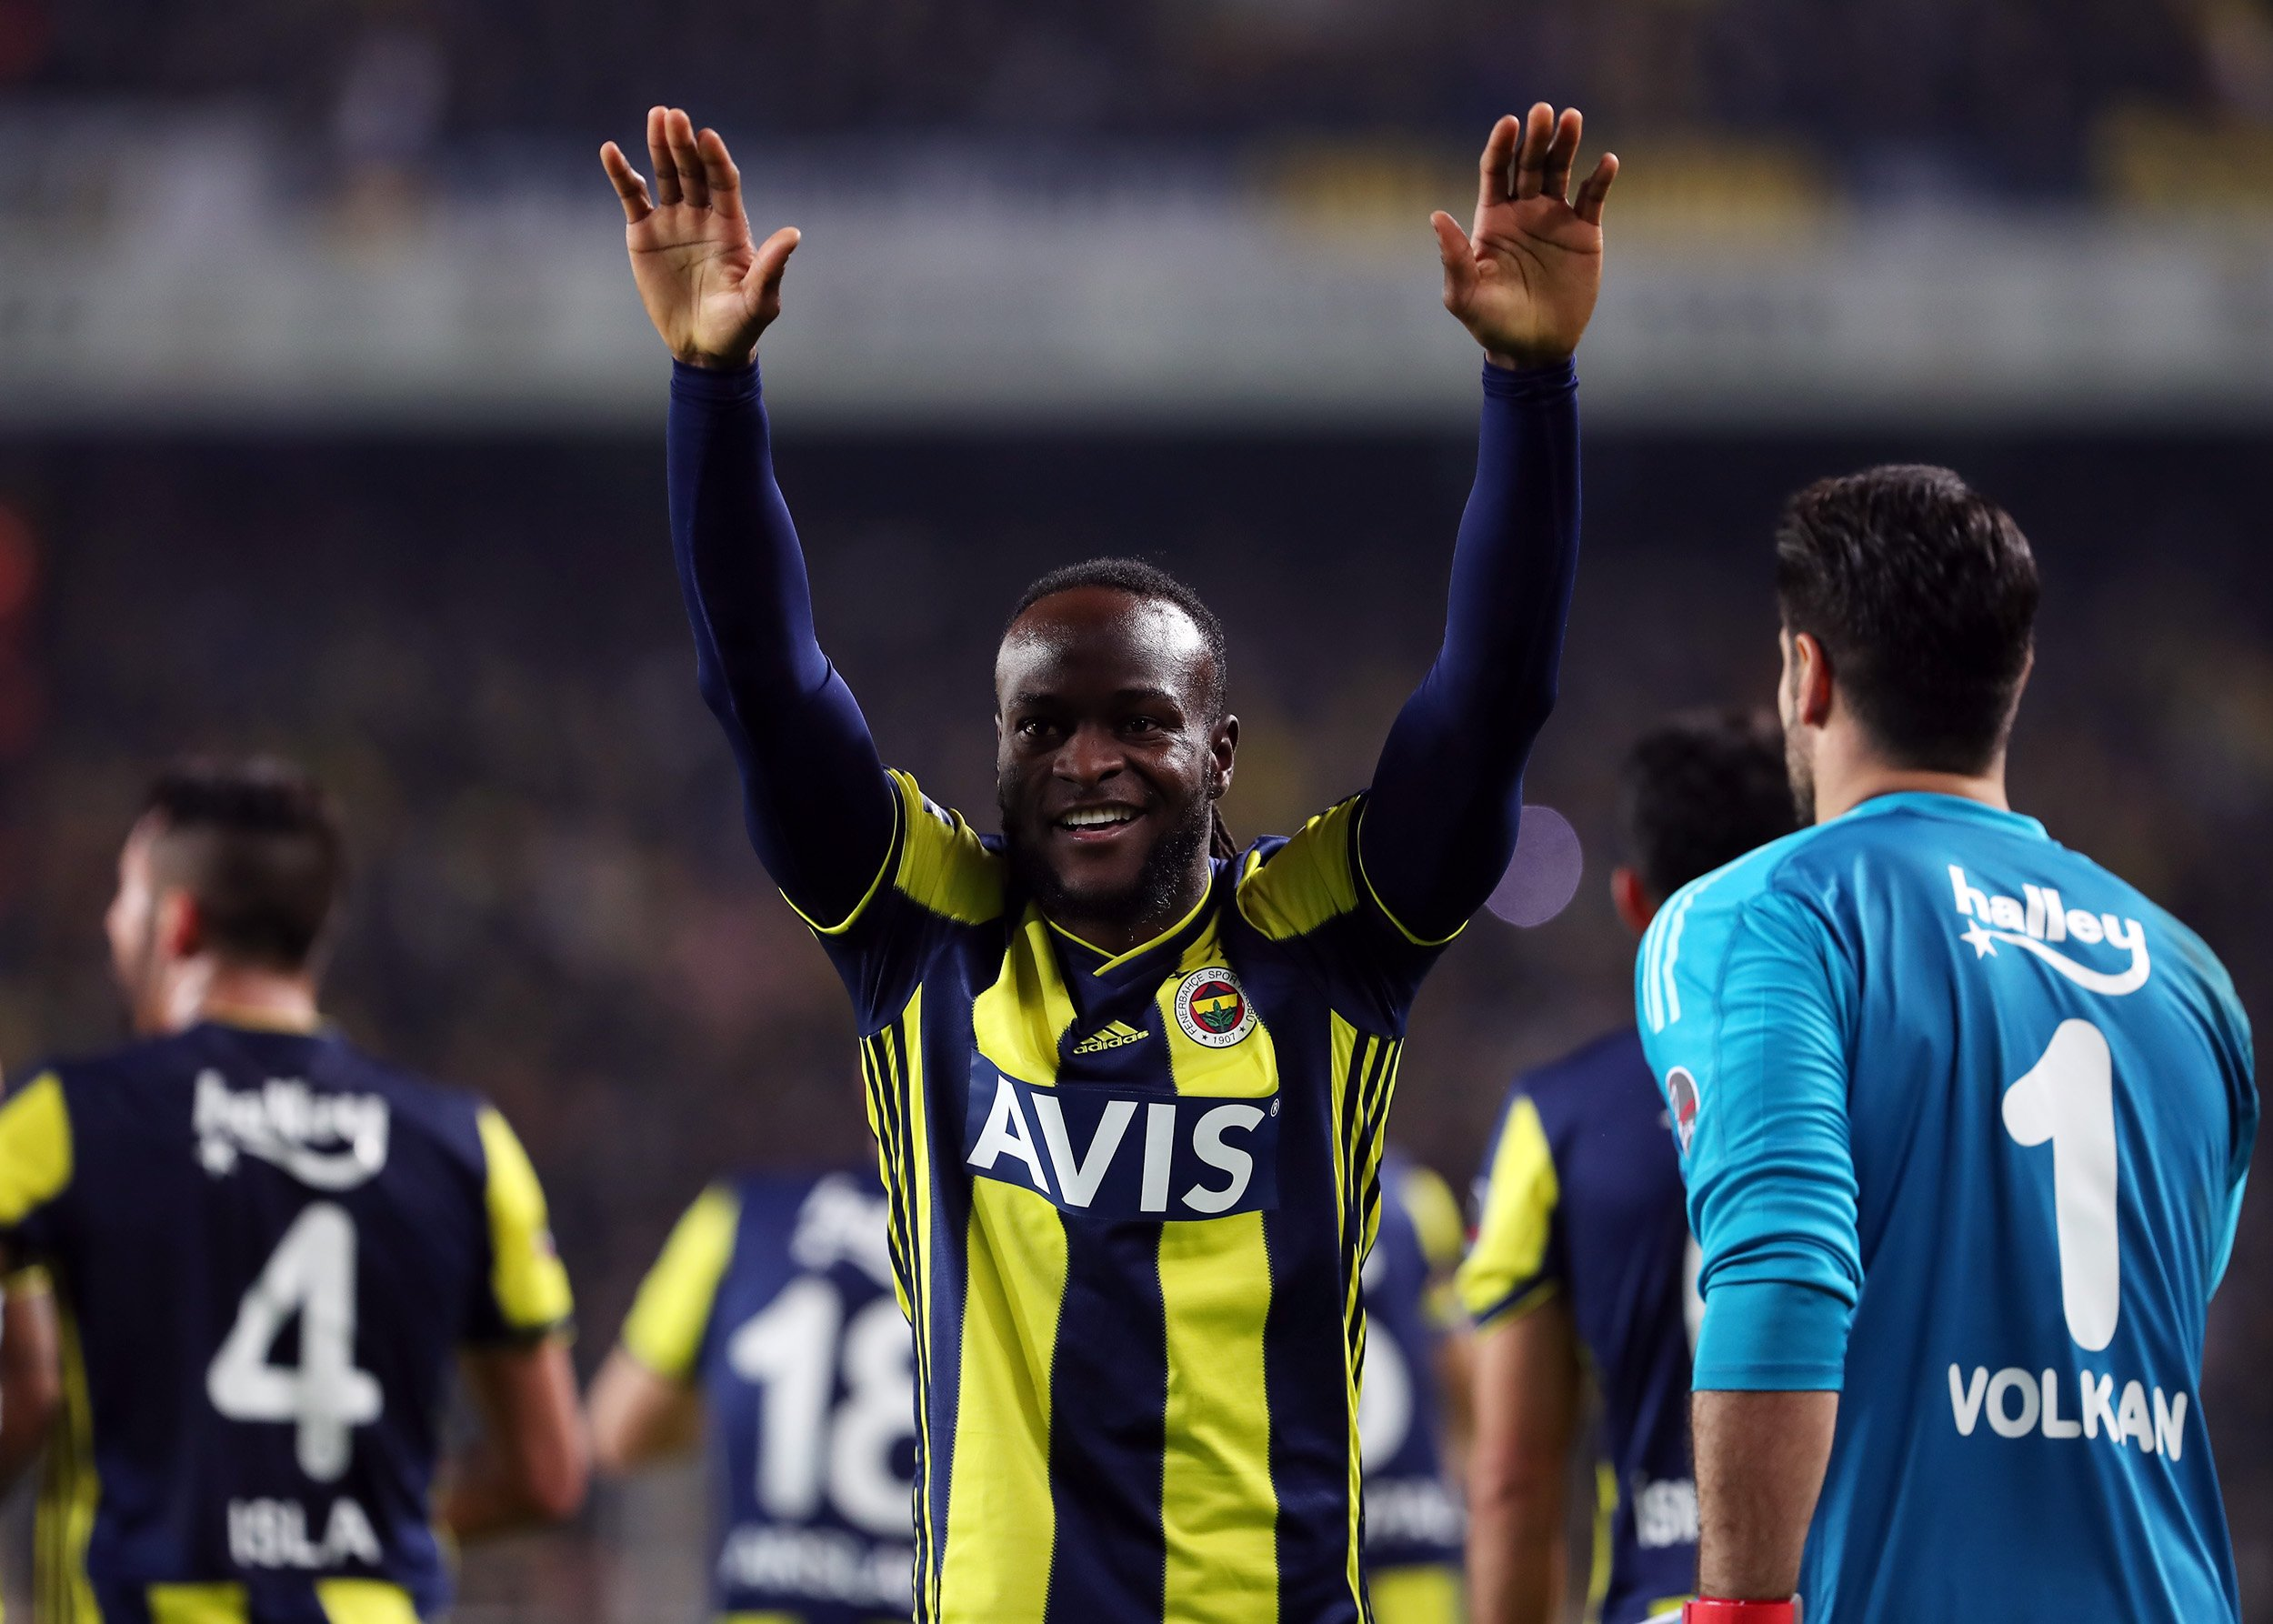 Moses Scores First Fenerbahce Goal In 2-0 Win Vs Goztepe